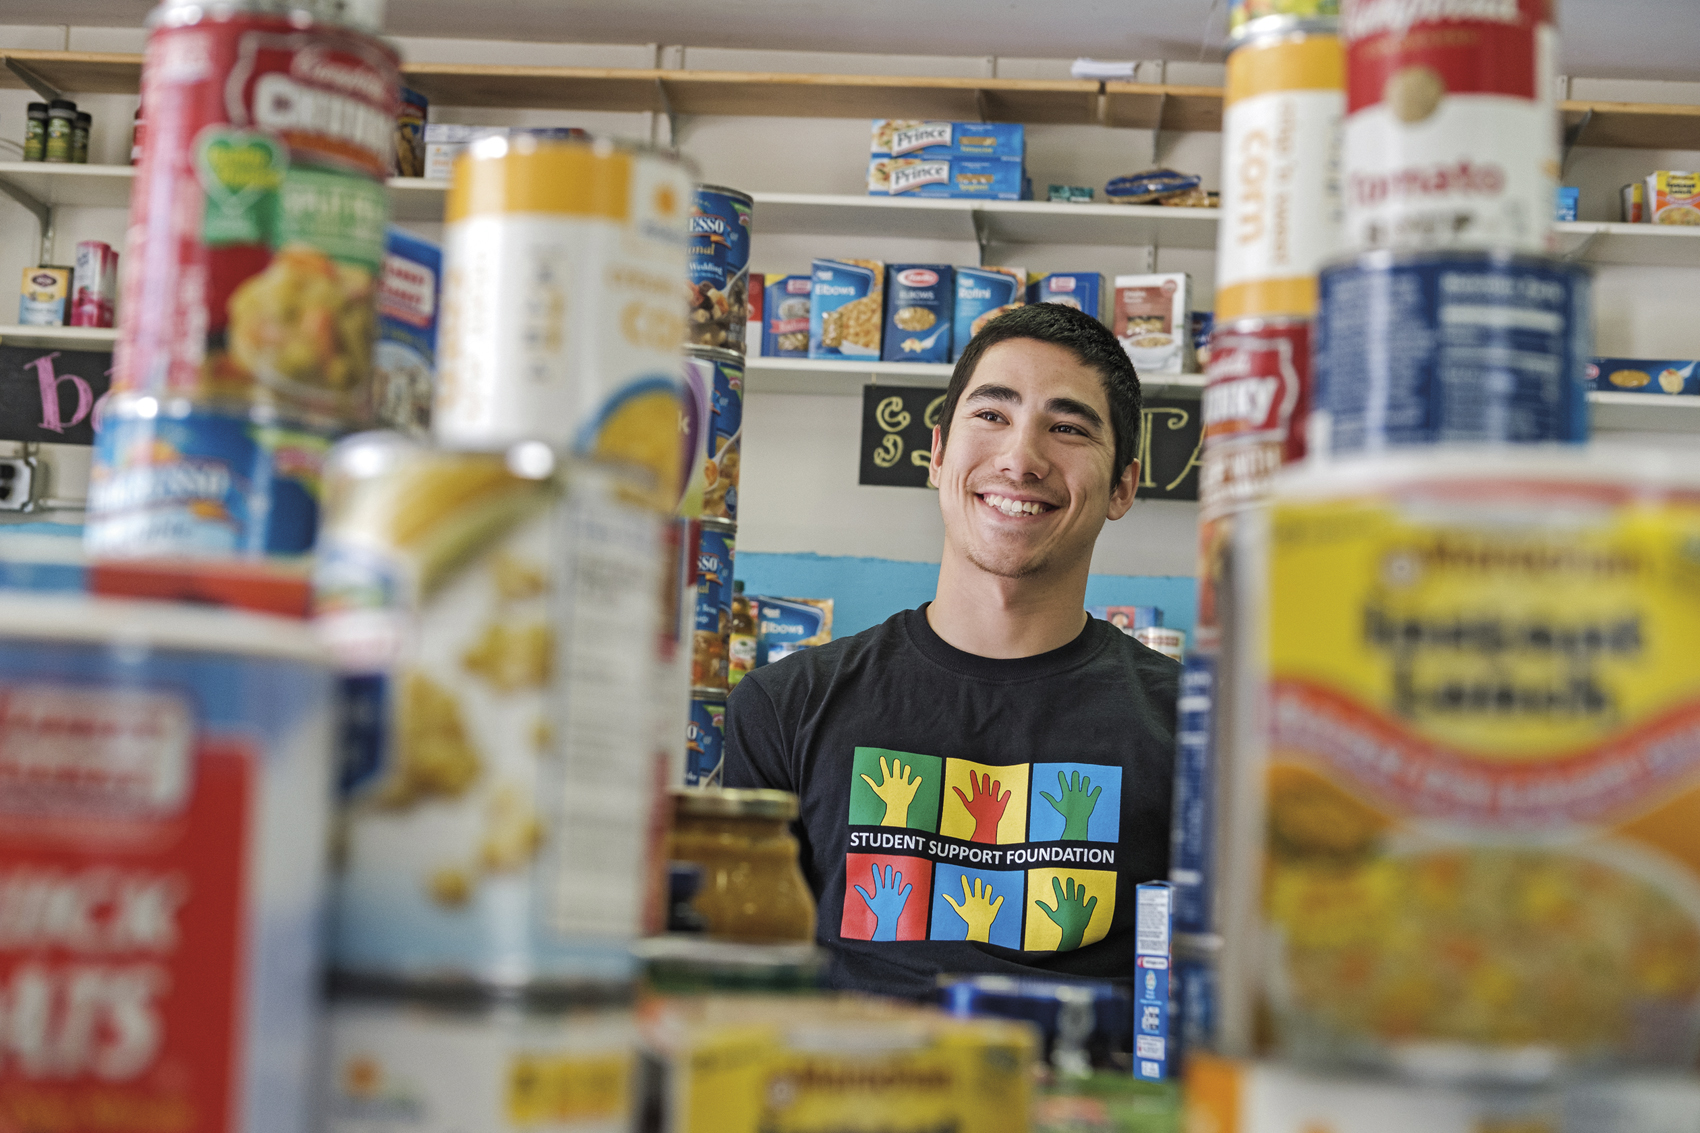 Adam Murata '16 volunteers at the Student Support Foundation food pantry, where 66 students in need were served last year. The food pantry also delivered eight large crates of food to the financial aid office to be distributed to still more students. Kaleb Hart '11 photo.